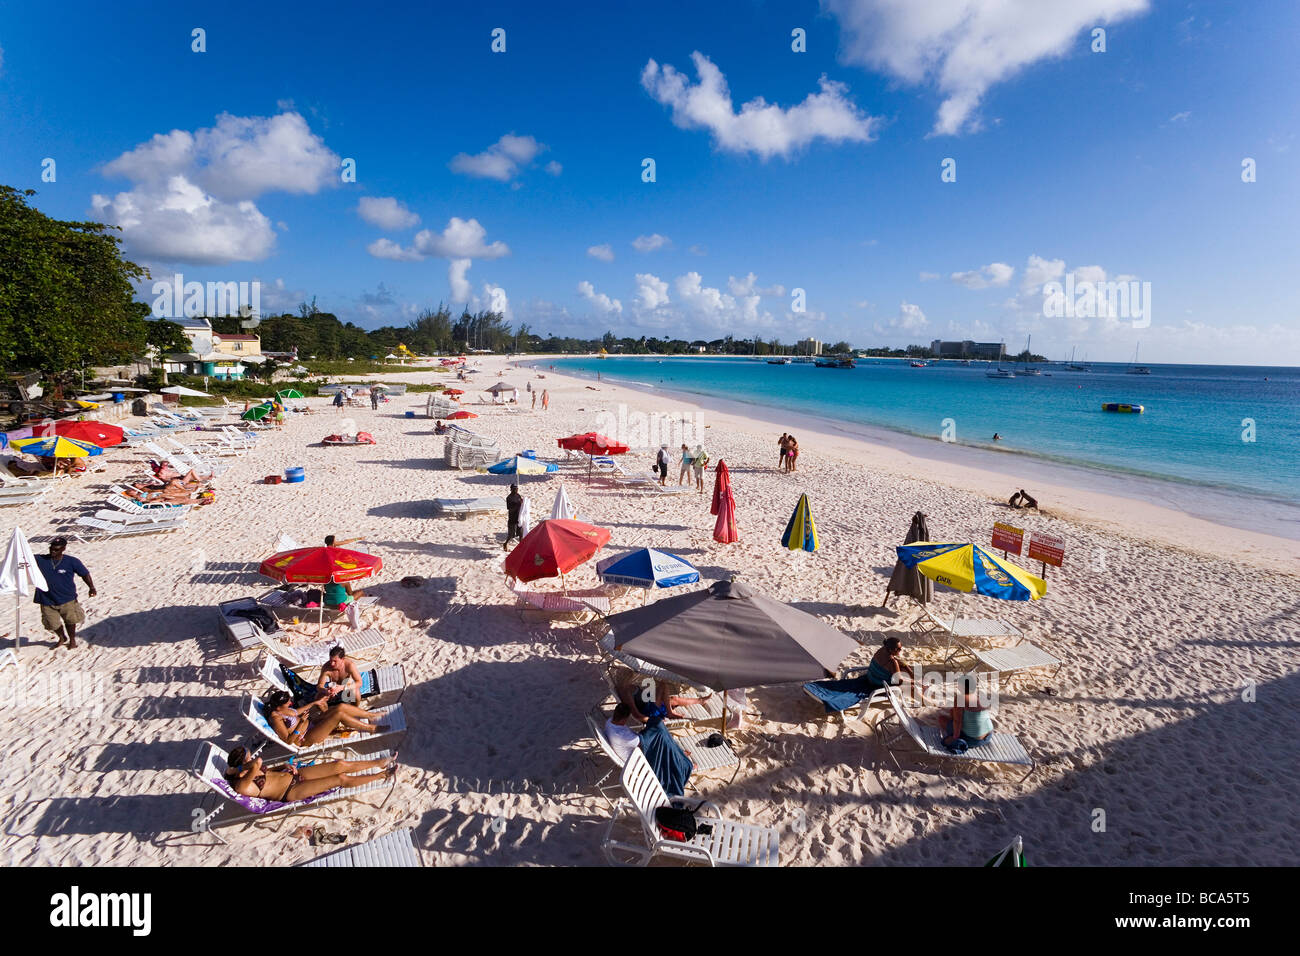 People Relaxing At Beach Bridgetown Barbados Caribbean